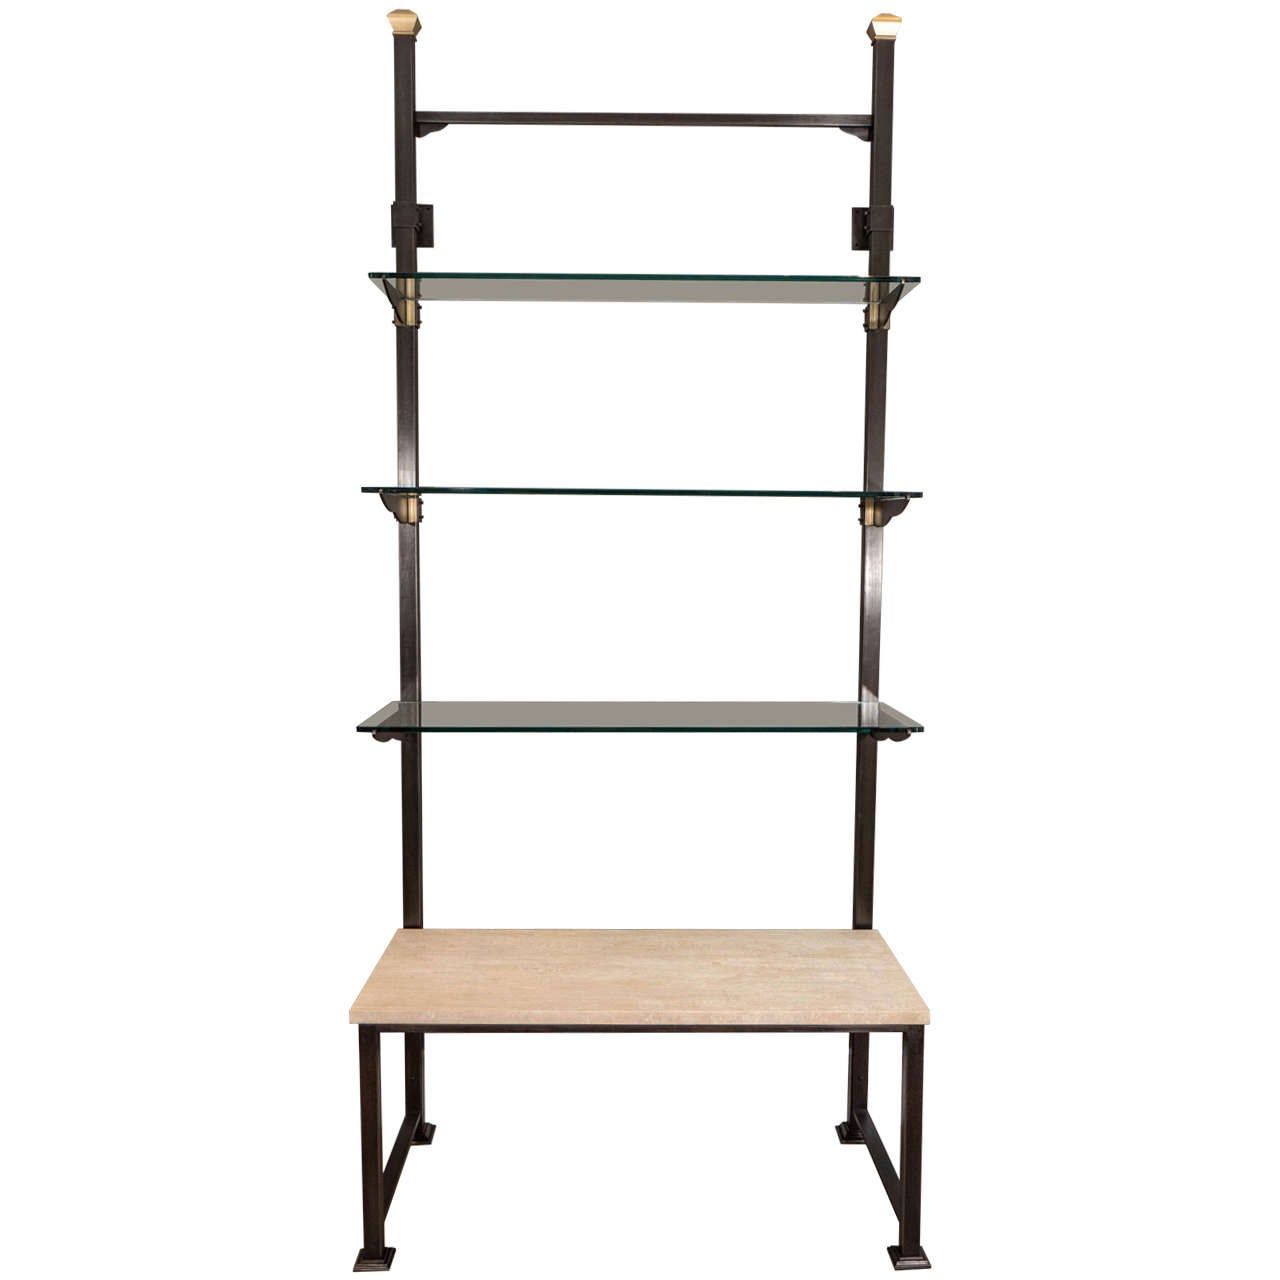 Viennese secessionist wall mounted shelving system at 1stdibs Wall mounted shelf systems